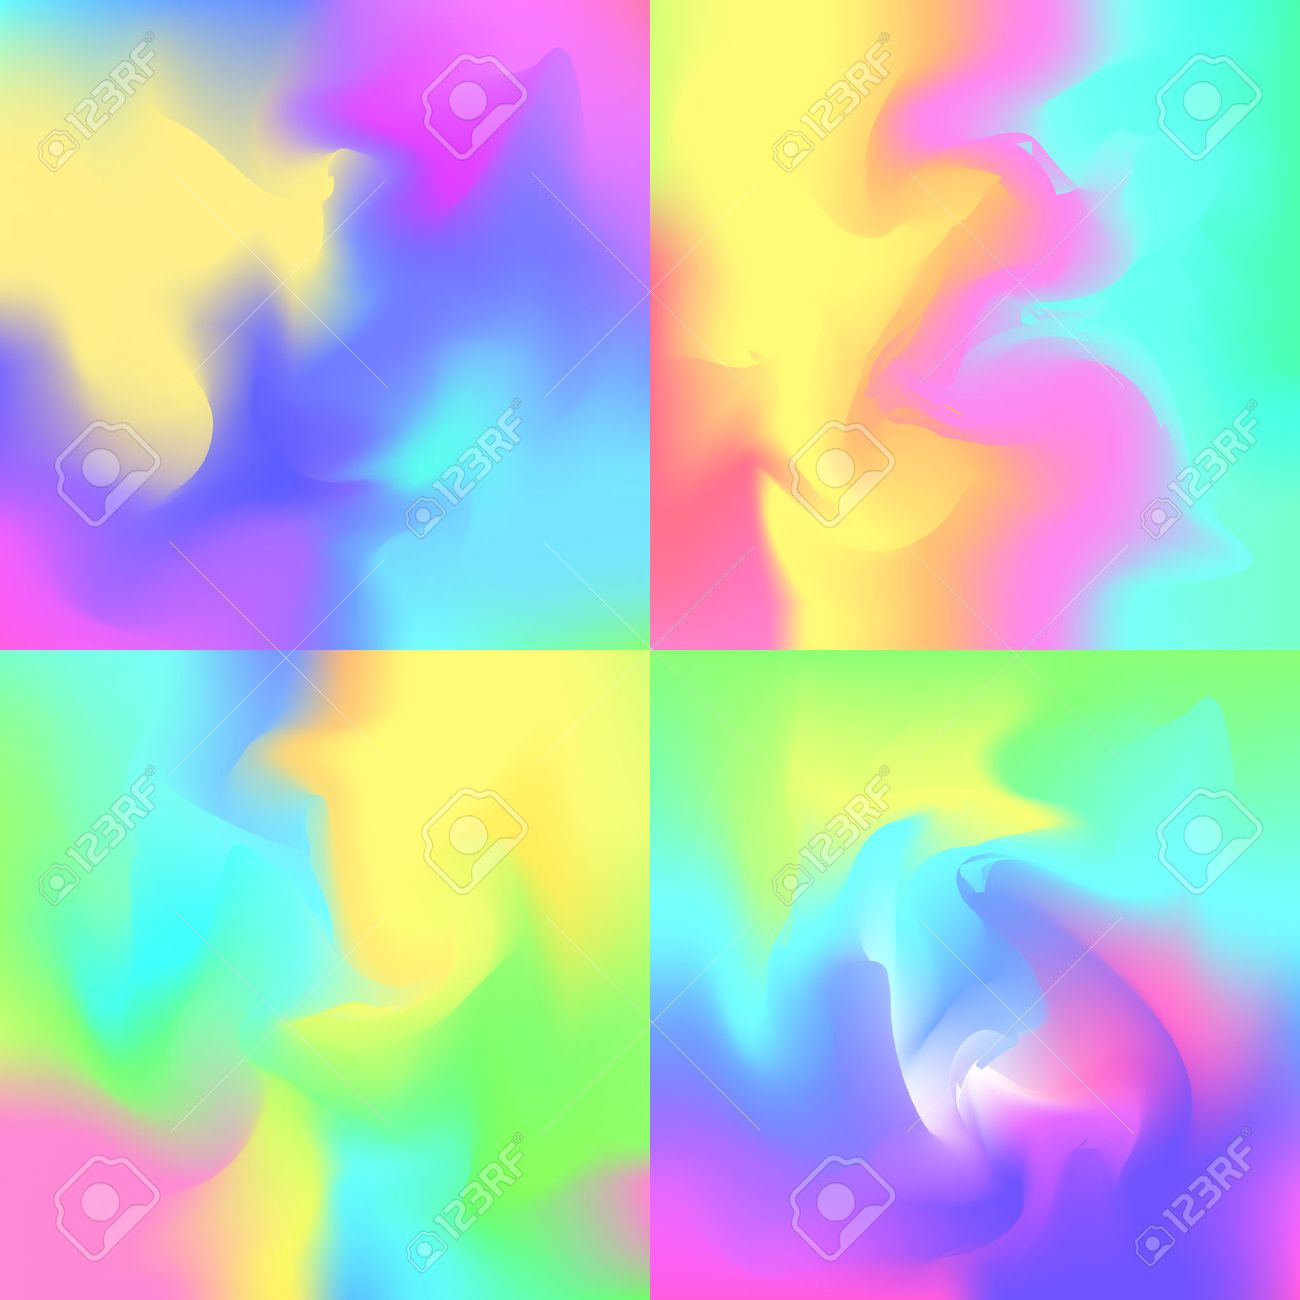 Set Of 4 Pastel Rainbow Backgrounds Hologram Inspired Abstract Royalty Free Cliparts Vectors And Stock Illustration Image 67582807